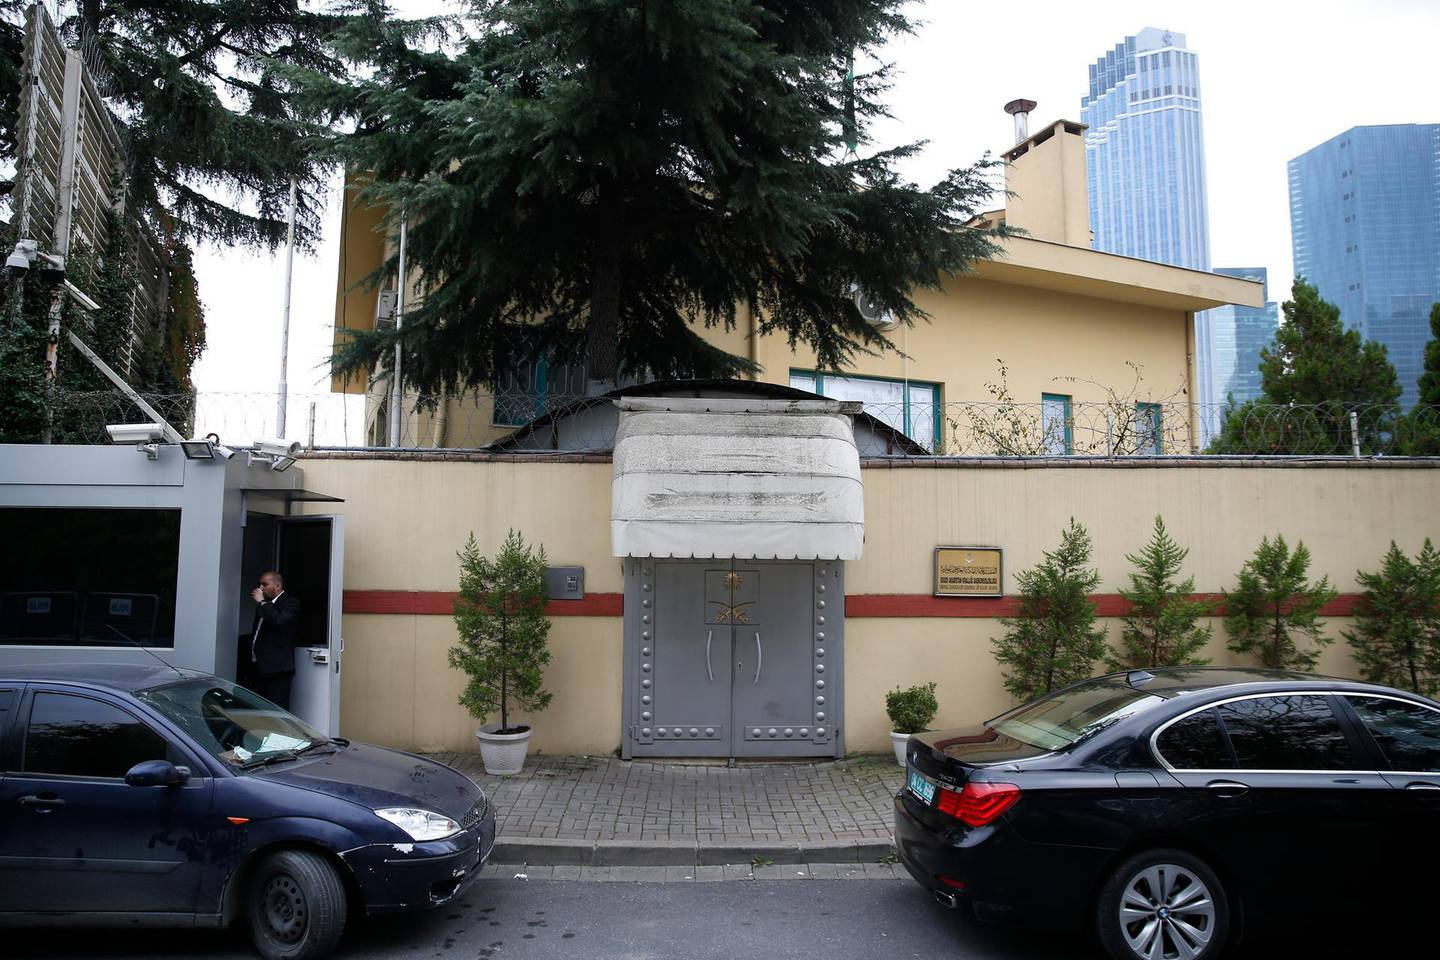 """A security guard stands outside Saudi Arabia's consulate in Istanbul, Saturday, Oct. 20, 2018. Saudi Arabia claims Saudi journalist Jamal Khashoggi died in a """"fistfight"""" in consulate, finally admitting that the writer had been slain at its diplomatic post. The overnight announcements in Saudi state media came more than two weeks after Khashoggi, 59, entered the building for paperwork required to marry his Turkish fiancée, and never came out.(AP Photo/Lefteris Pitarakis)"""